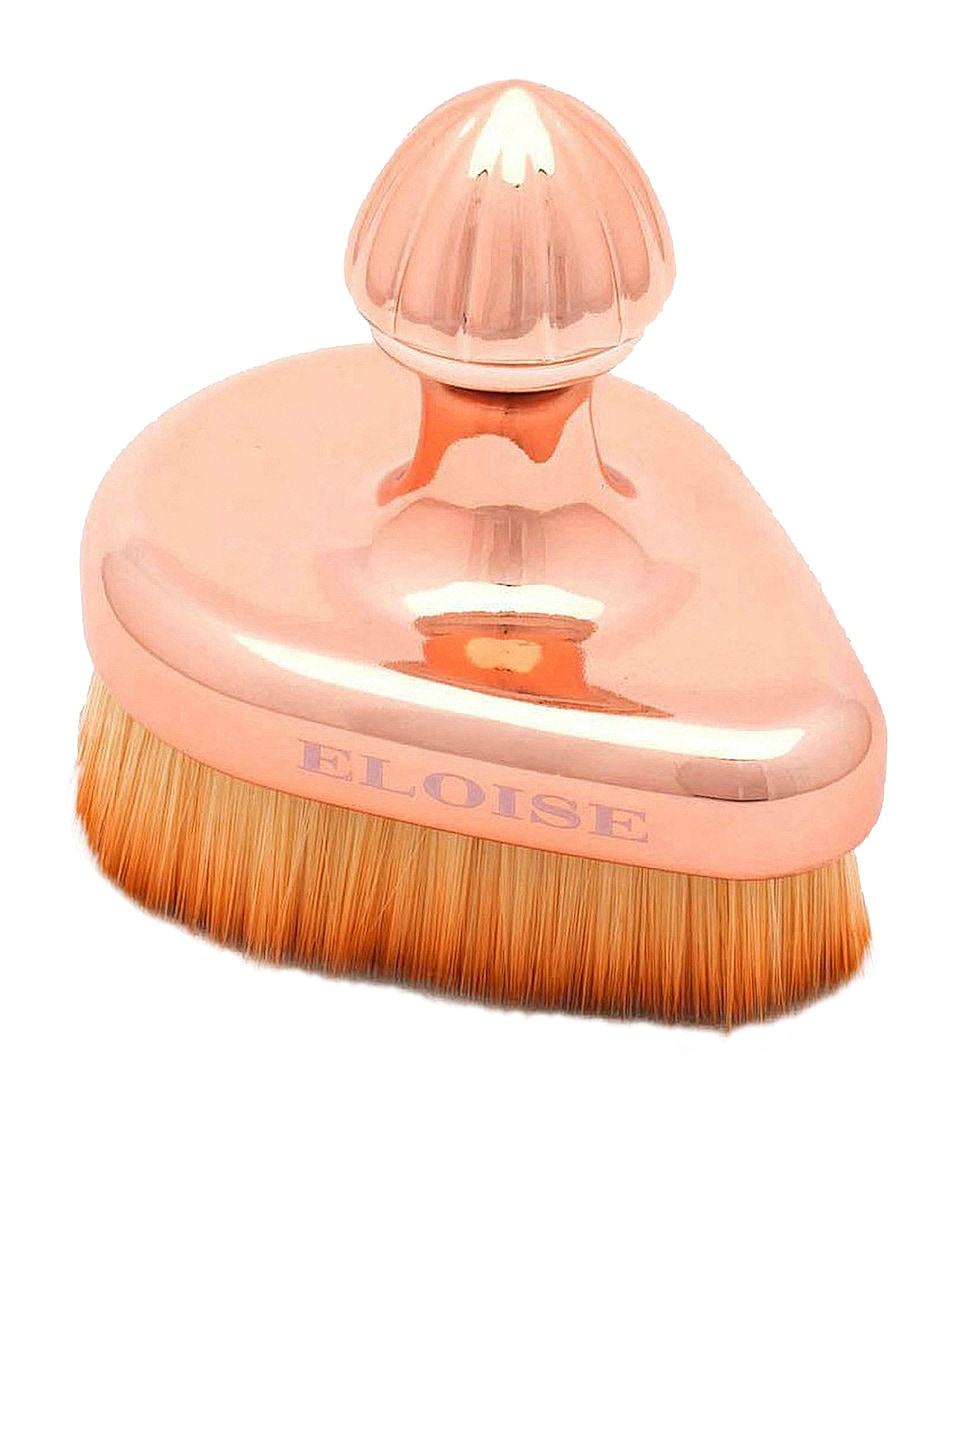 Eloise Beauty BROSSE DE MAQUILLAGE TEAR DROP